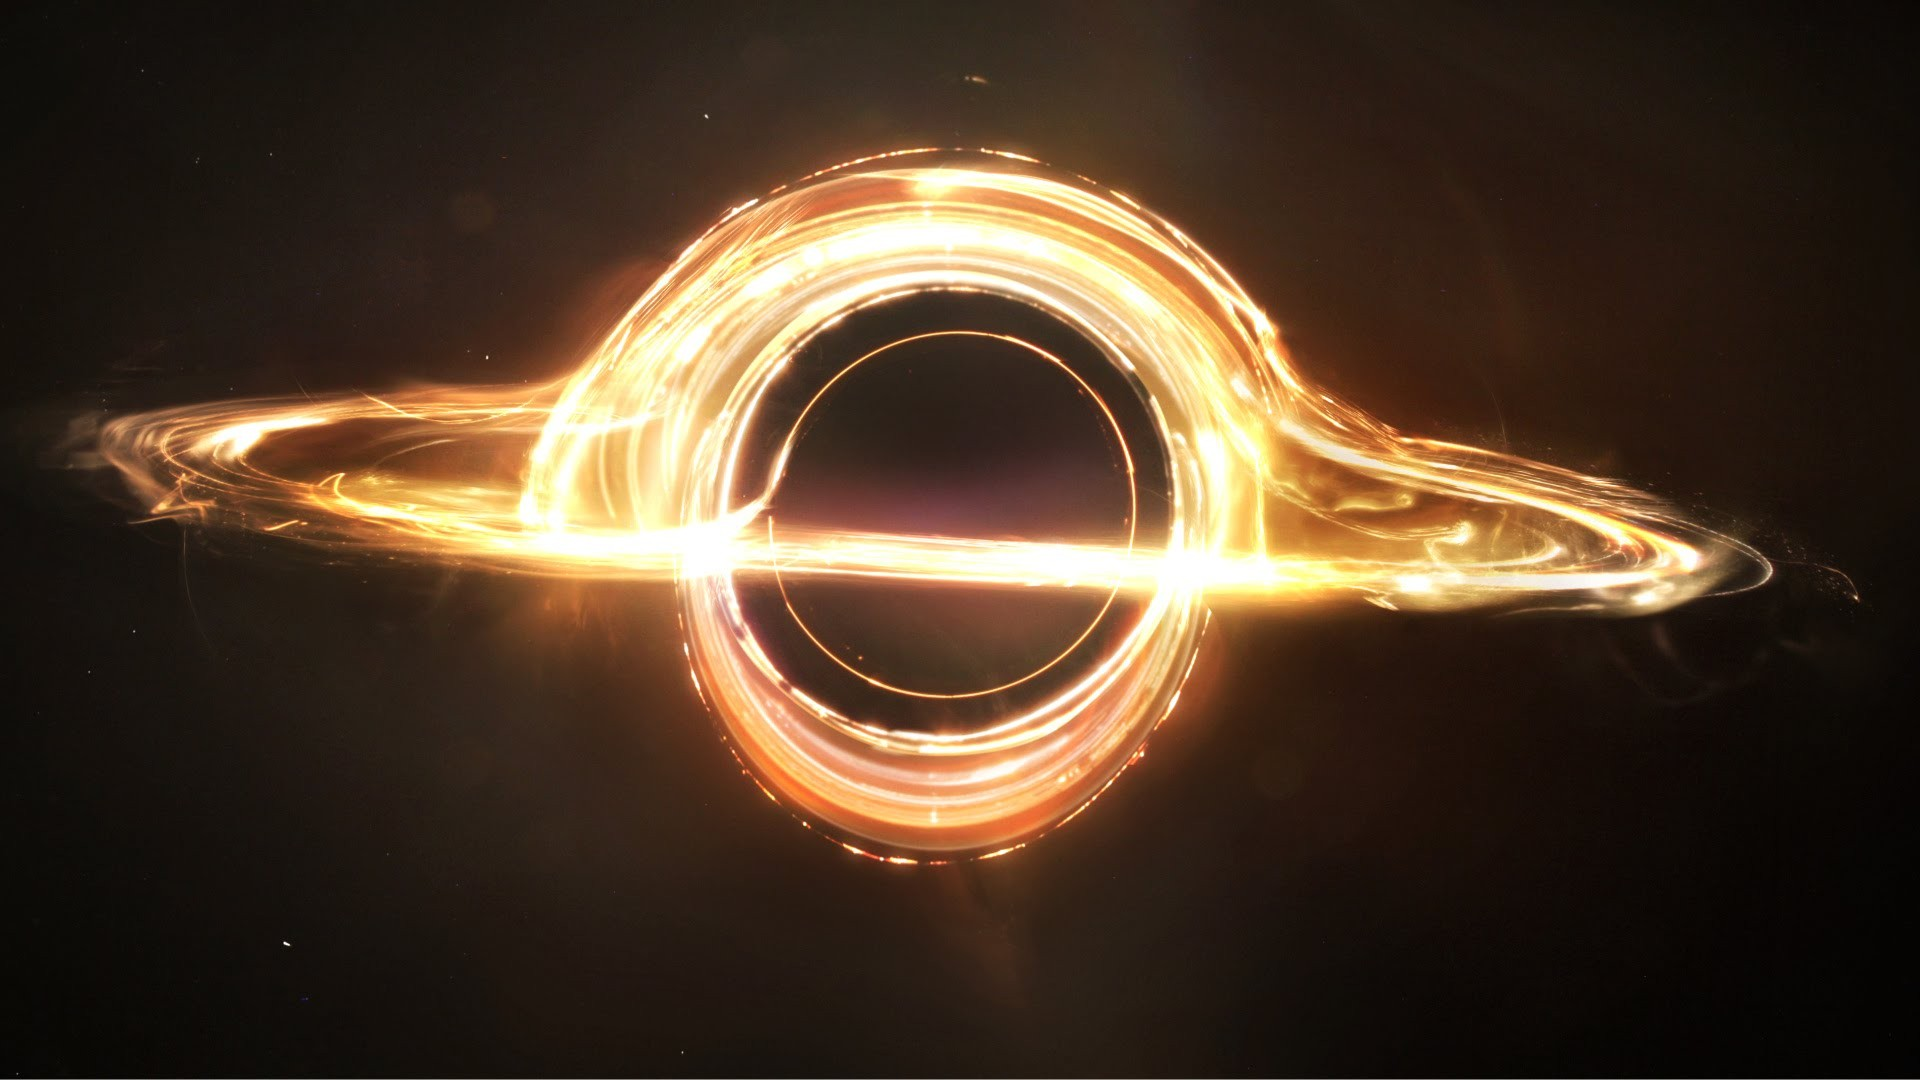 black hole wallpaper ·① download free awesome wallpapers for